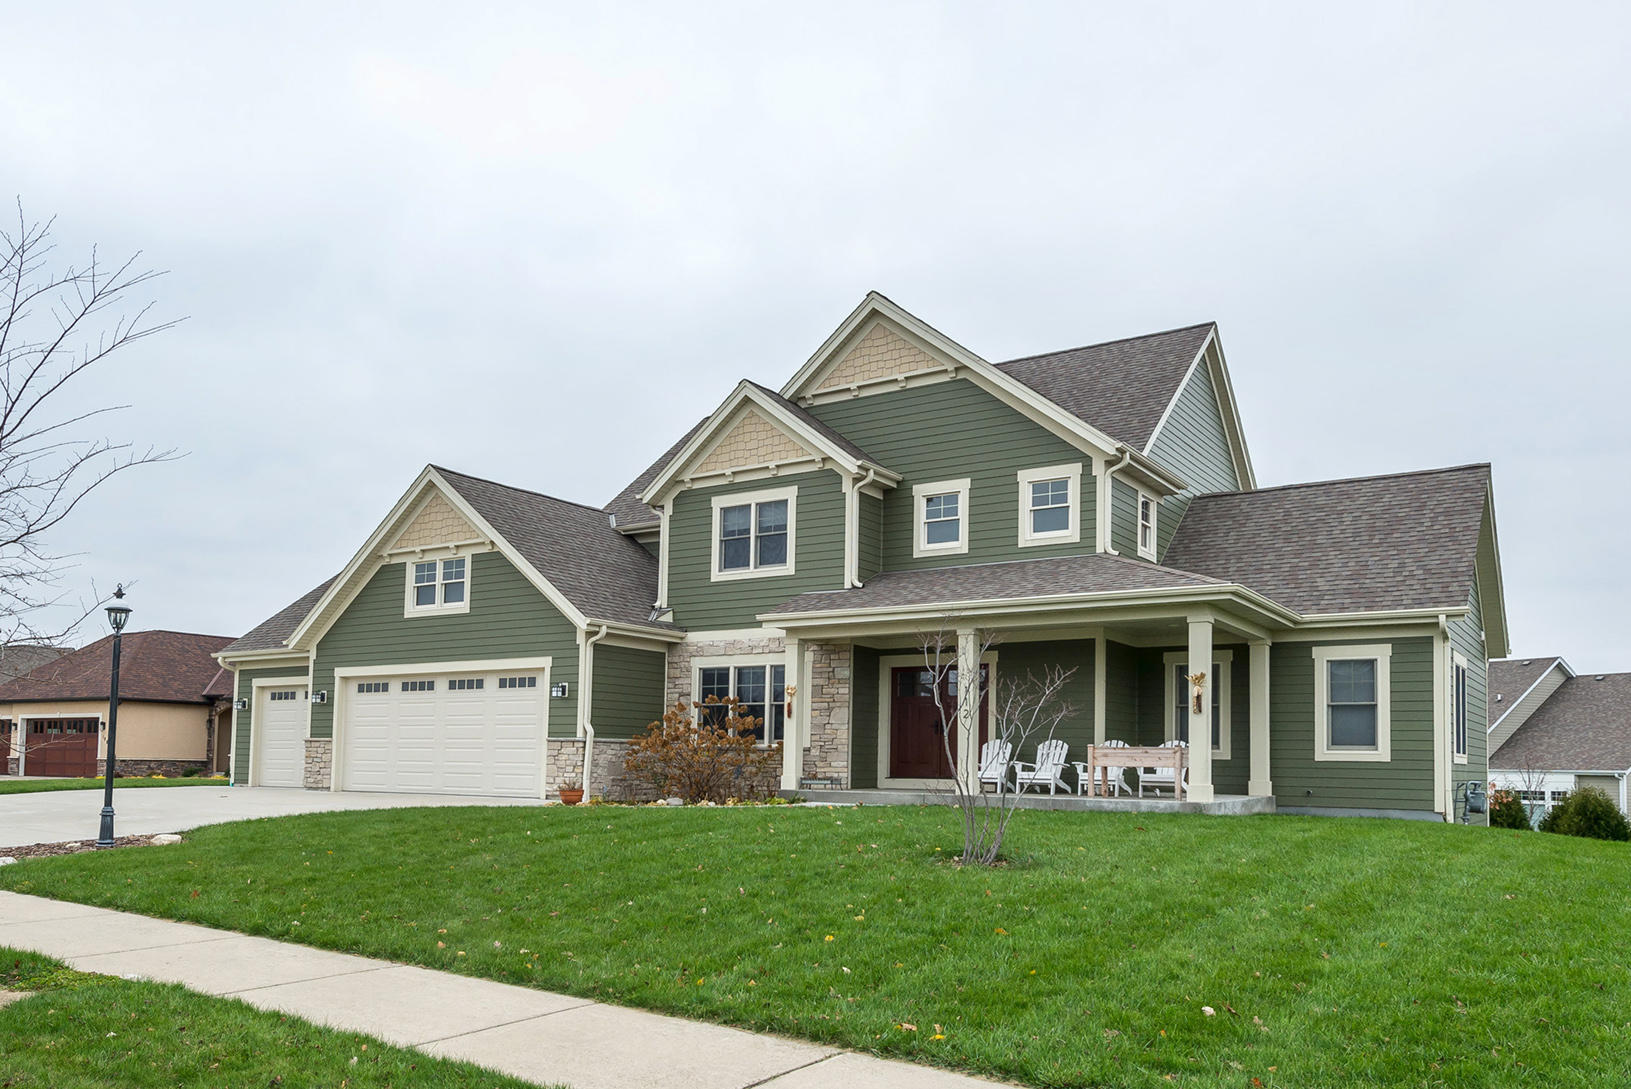 112 Griffith Ct, Waukesha, Wisconsin 53188, 5 Bedrooms Bedrooms, 8 Rooms Rooms,3 BathroomsBathrooms,Single-Family,For Sale,Griffith Ct,1614007